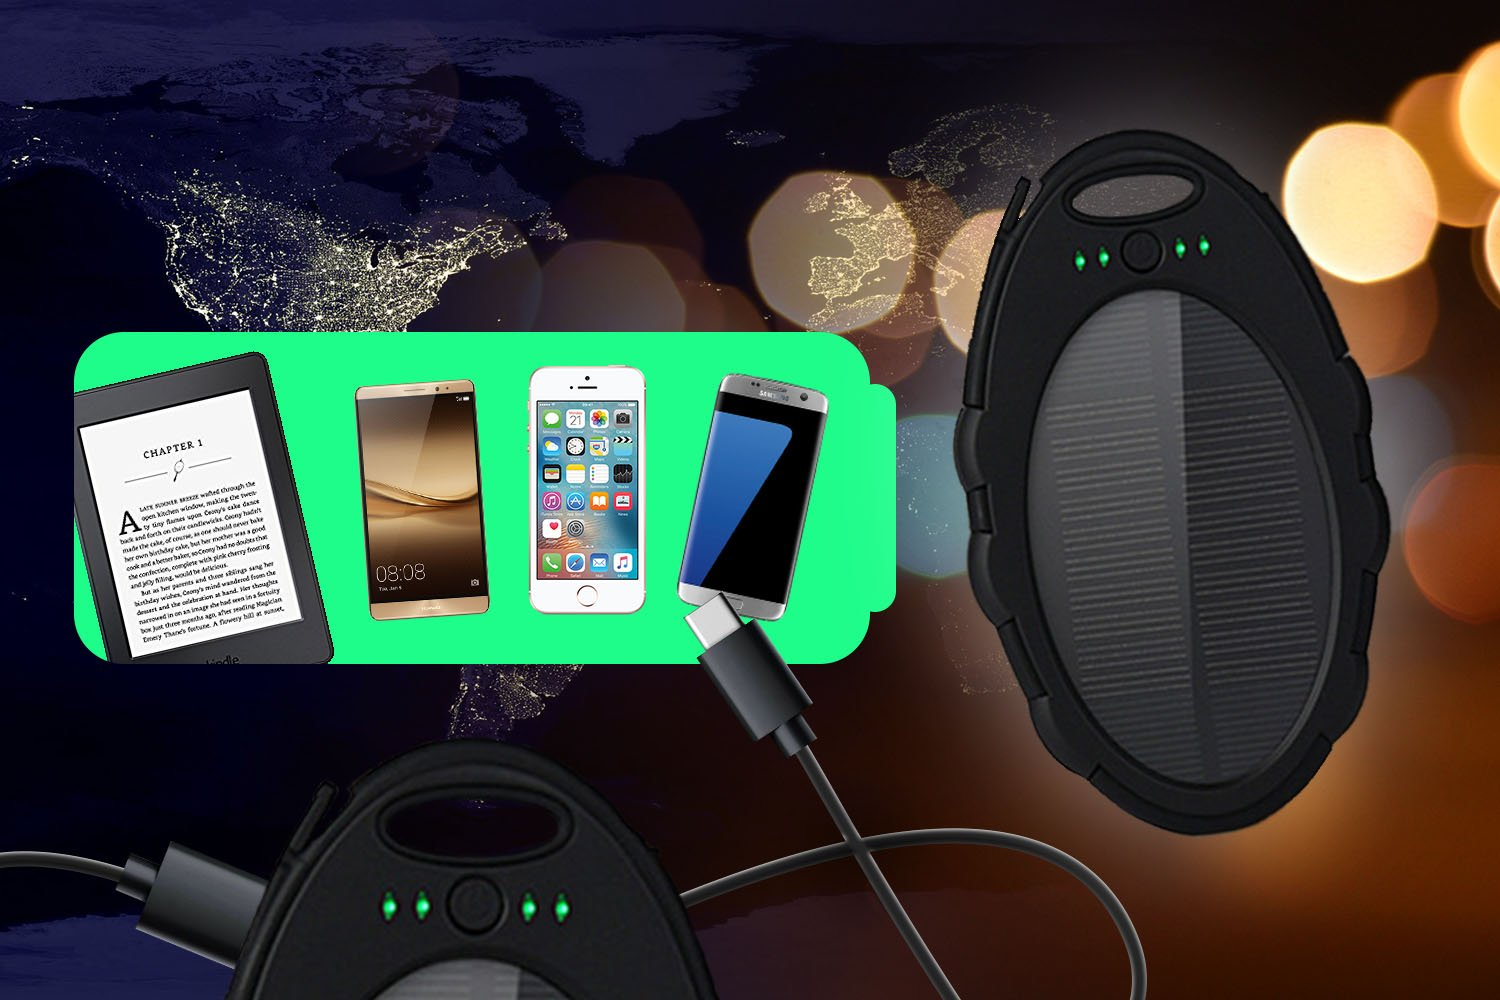 5,000mAh Portable Solar Power Bank Charger, Battery Pack, 2 USB Port +Flash Light +Charger Cable Water Resistant, Led indicator External Battery Backup, For all Cell phones, Smart Phone Tablet, Laptop